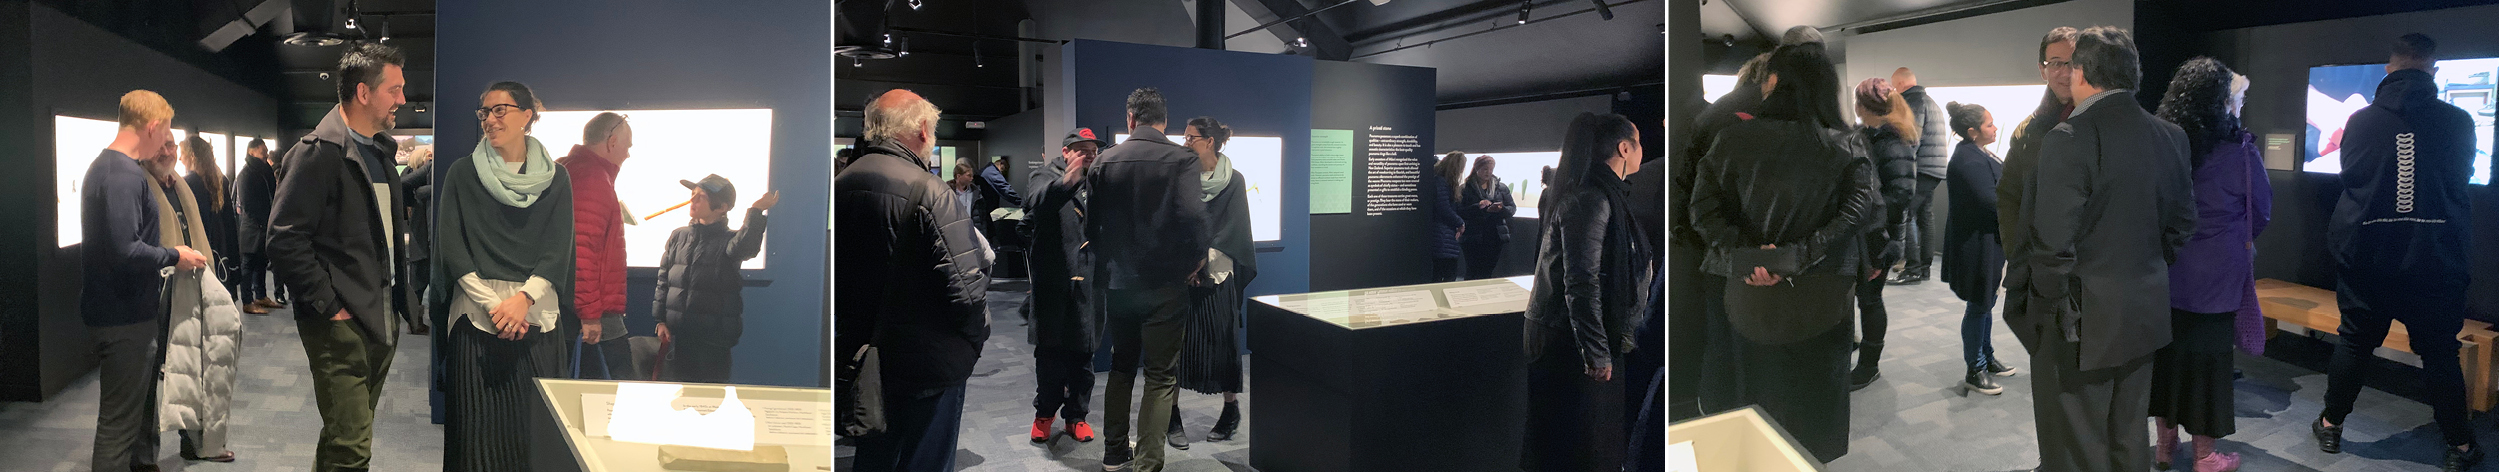 Image: Guests at the Opening event enjoy a first public viewing of the exhibition.